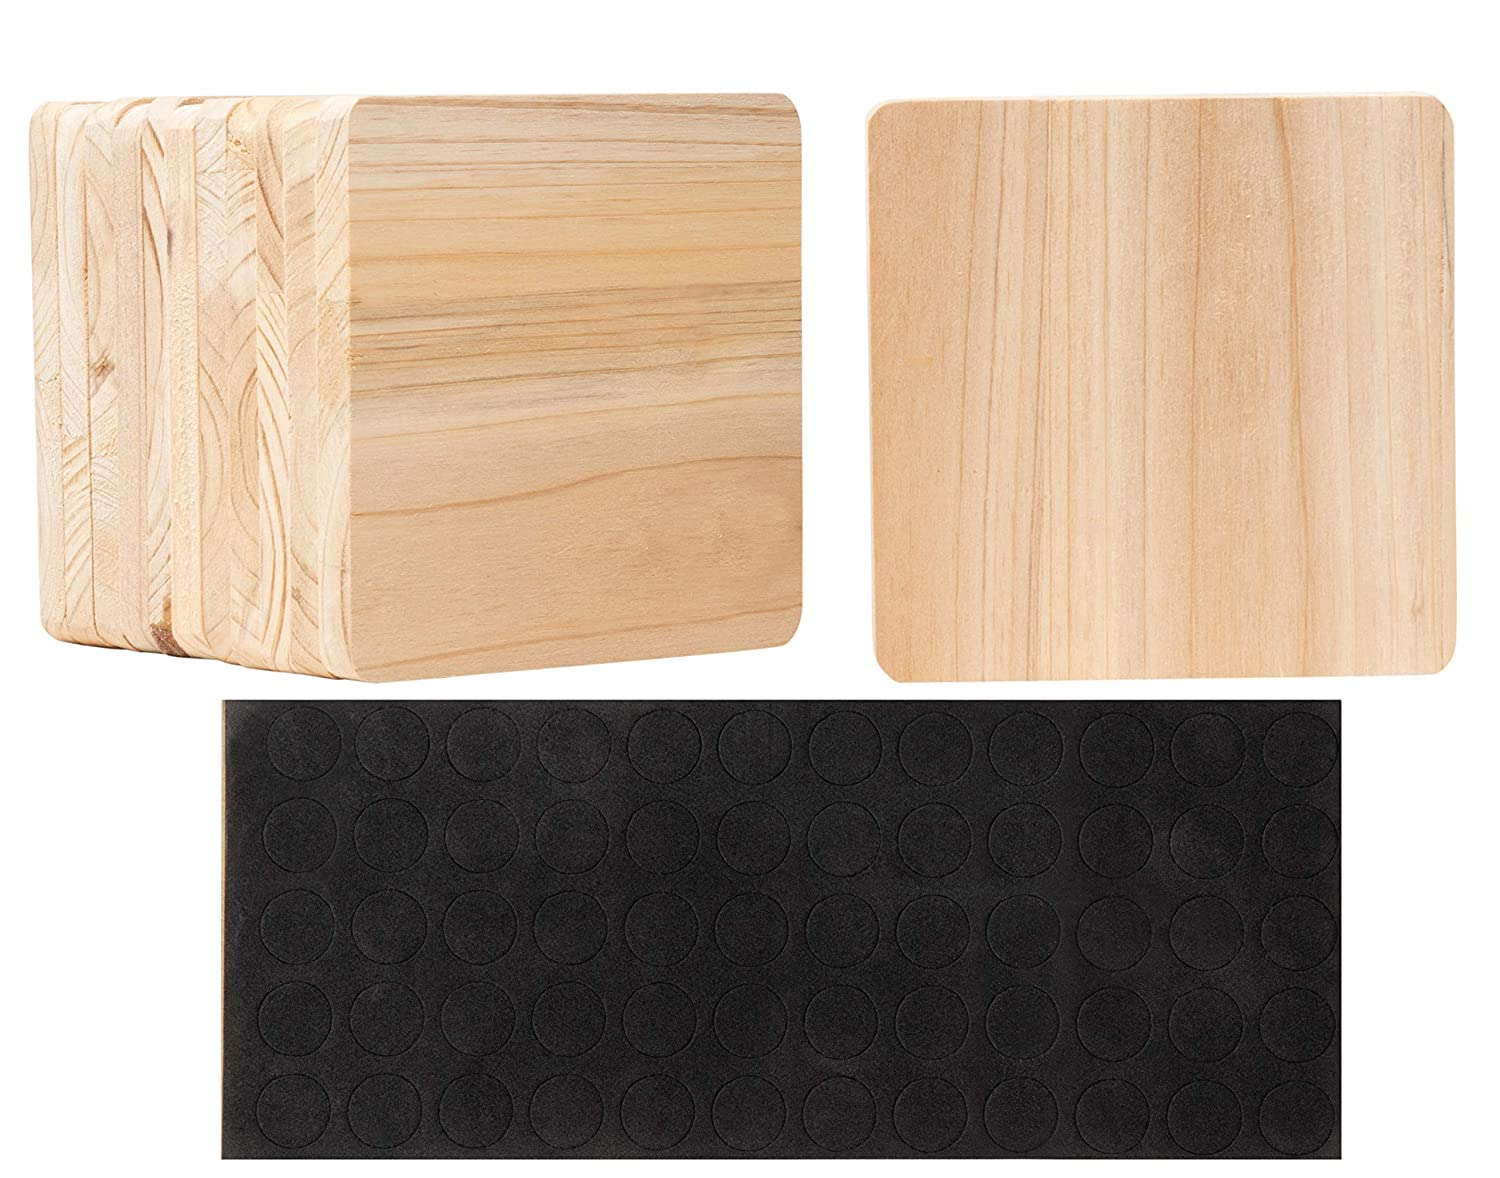 Wood Coasters - 12-Pack Unfinished Square Wood Coasters with Non-Slip Foam Dot, Wooden Drink Coasters, Cup Coasters for Home, Kitchen, Office Desk, Art Craft DIY Project, 3.7 x 3.7 x 0.4 Inches